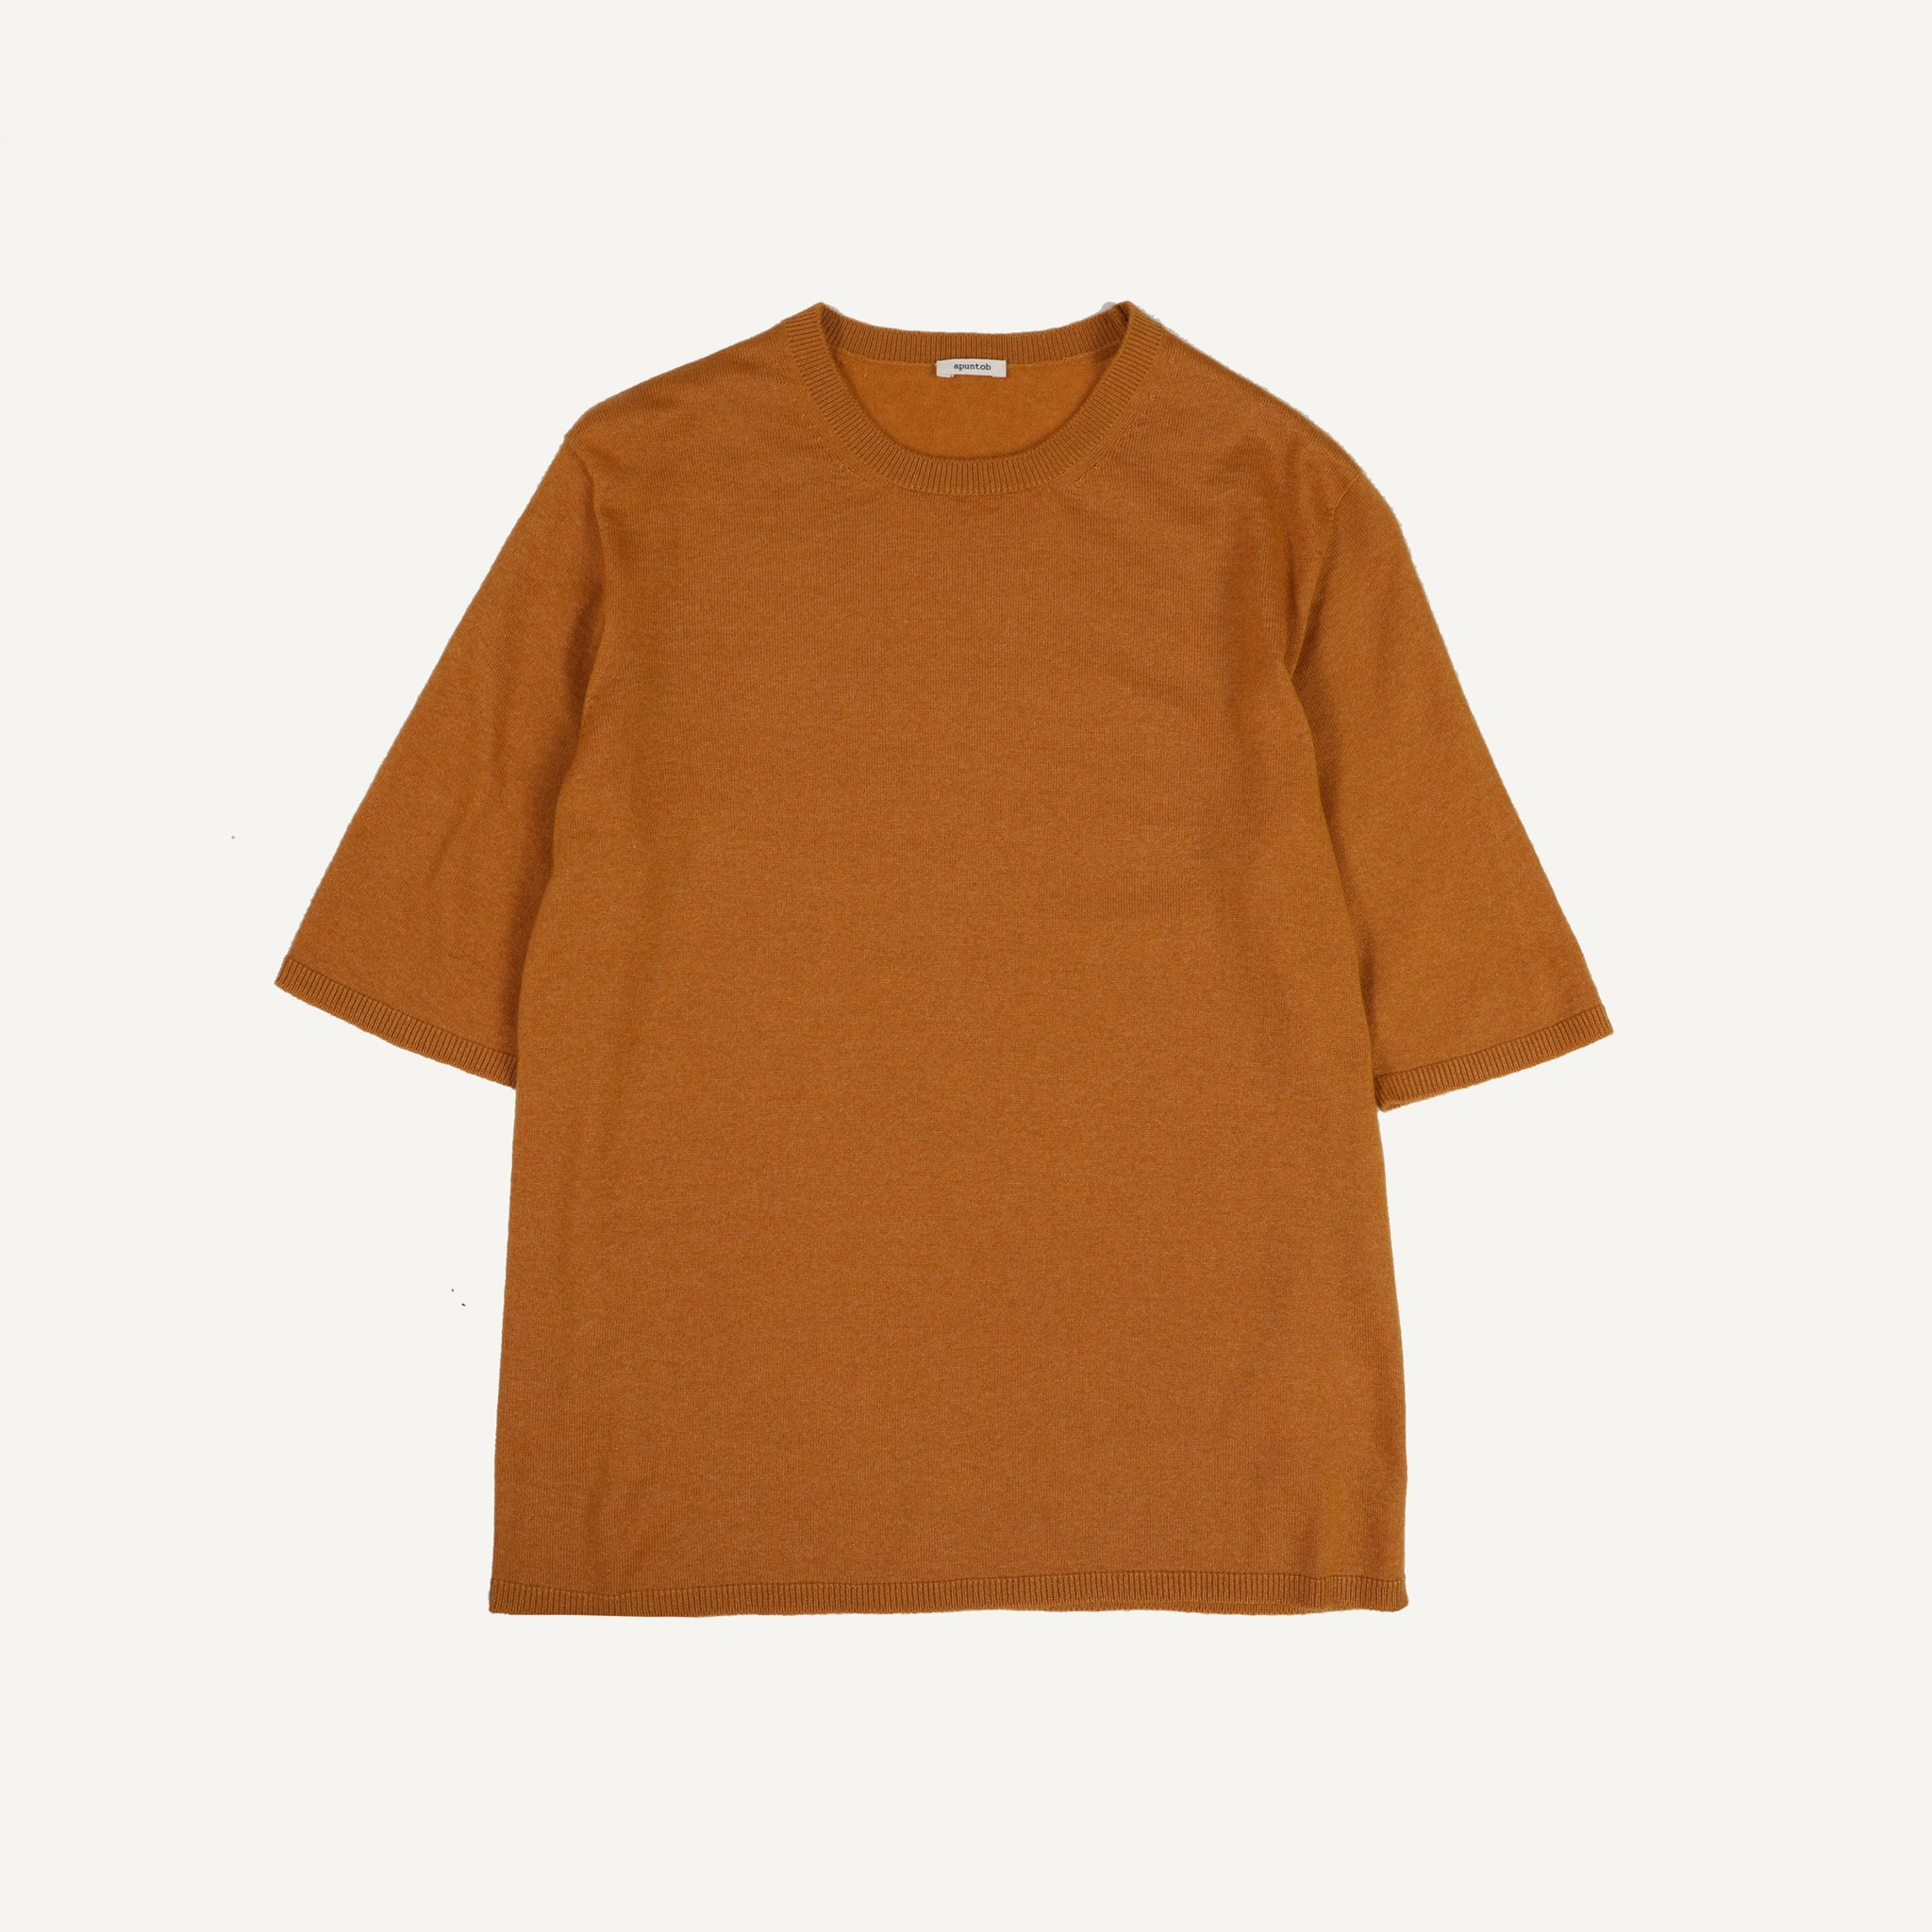 APUNTOB SHORT SLEEVE SWEATER